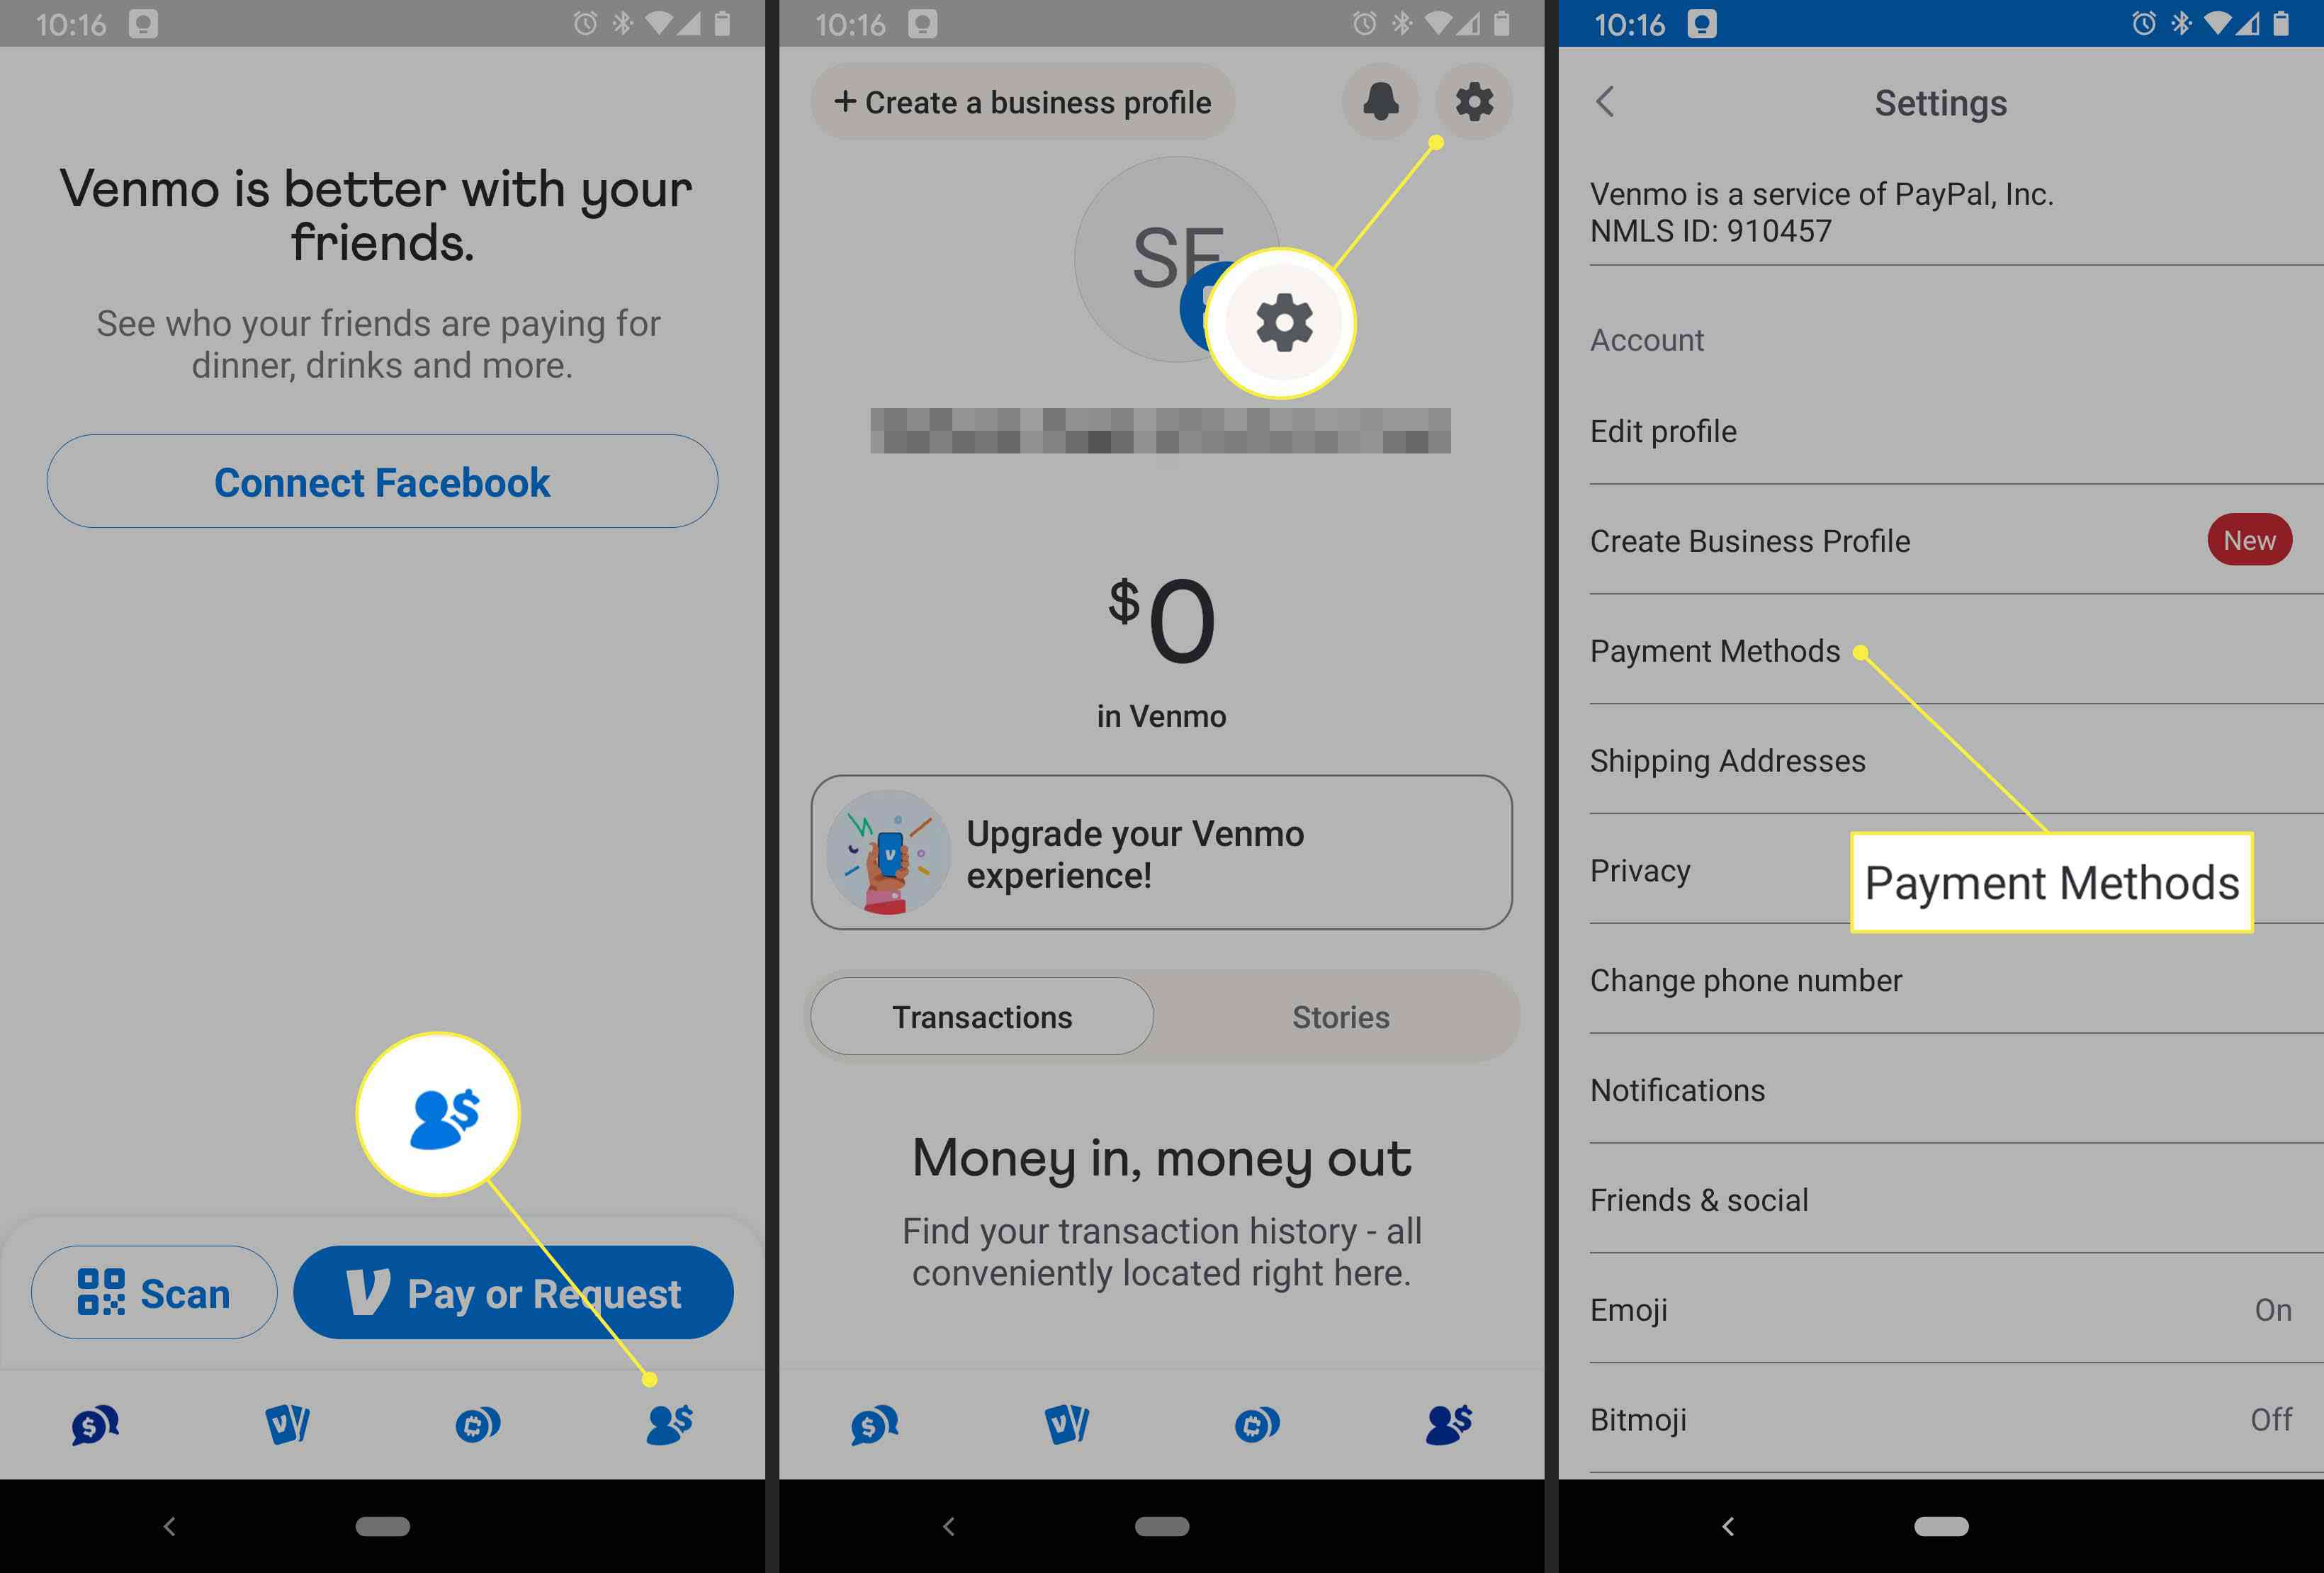 A Venmo user accesses the Payment Methods settings